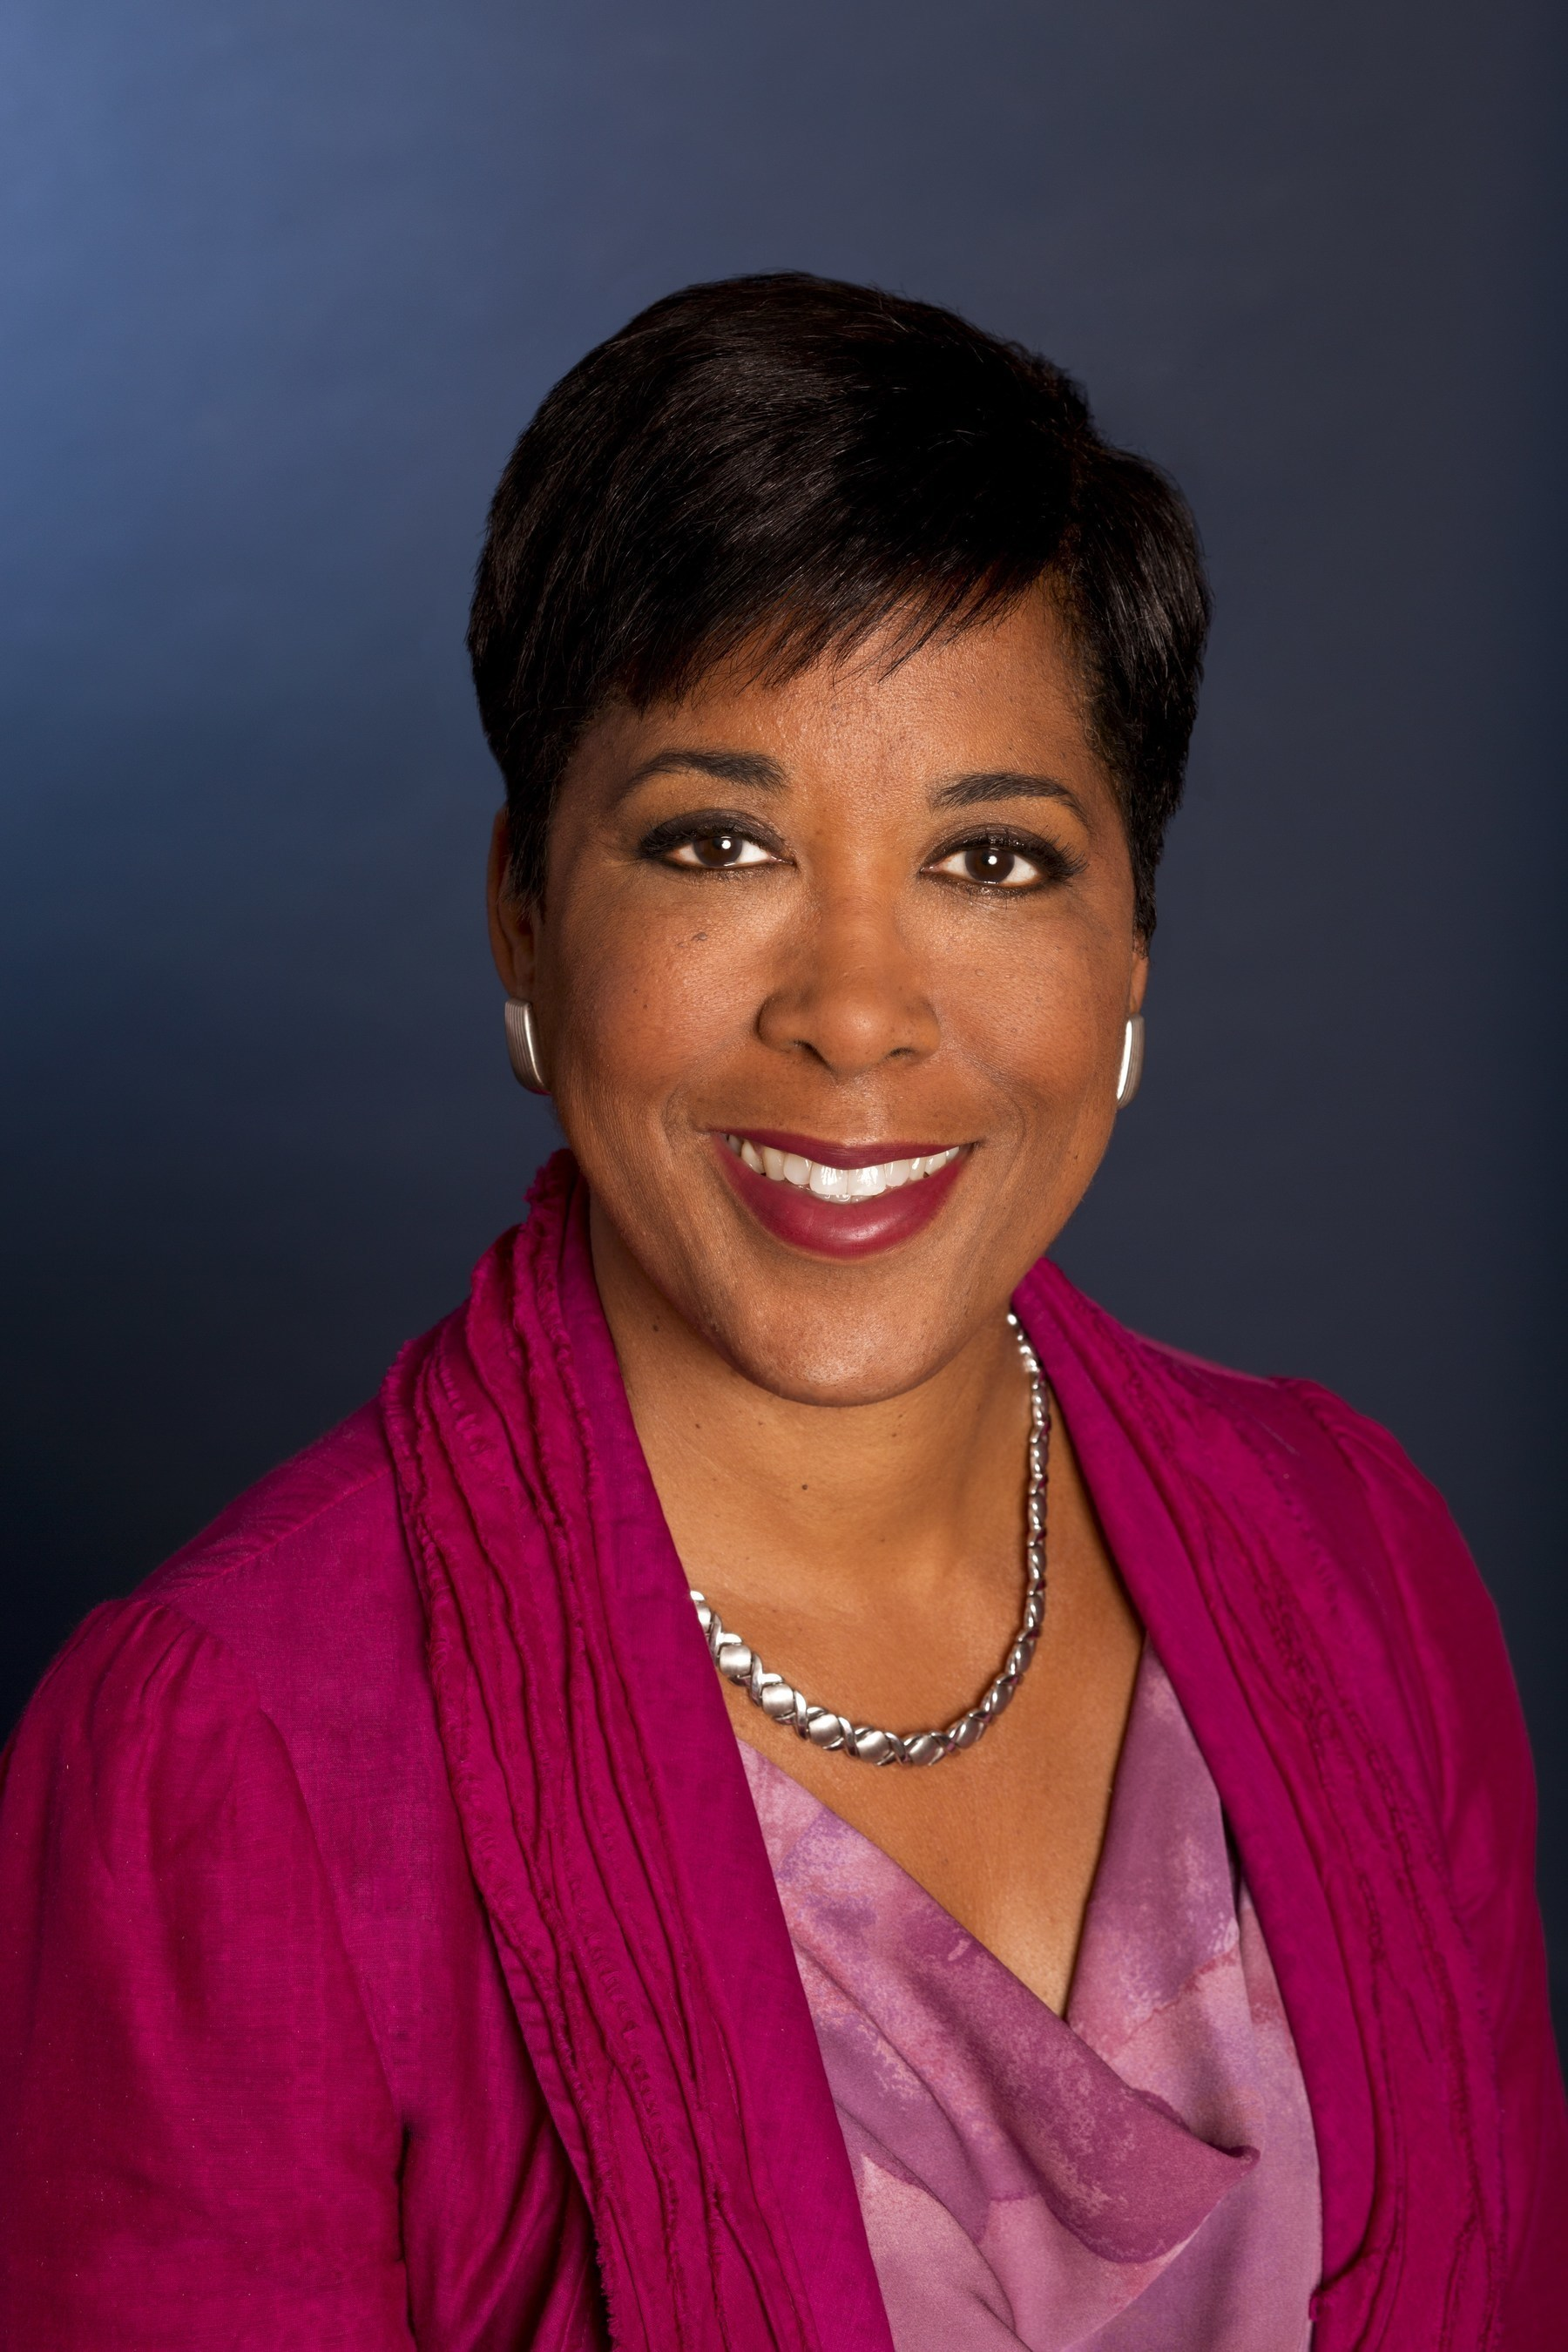 Family Engagement Expert Dr. Karen Mapp And Scholastic Expand Collaboration With Launch Of Workshop